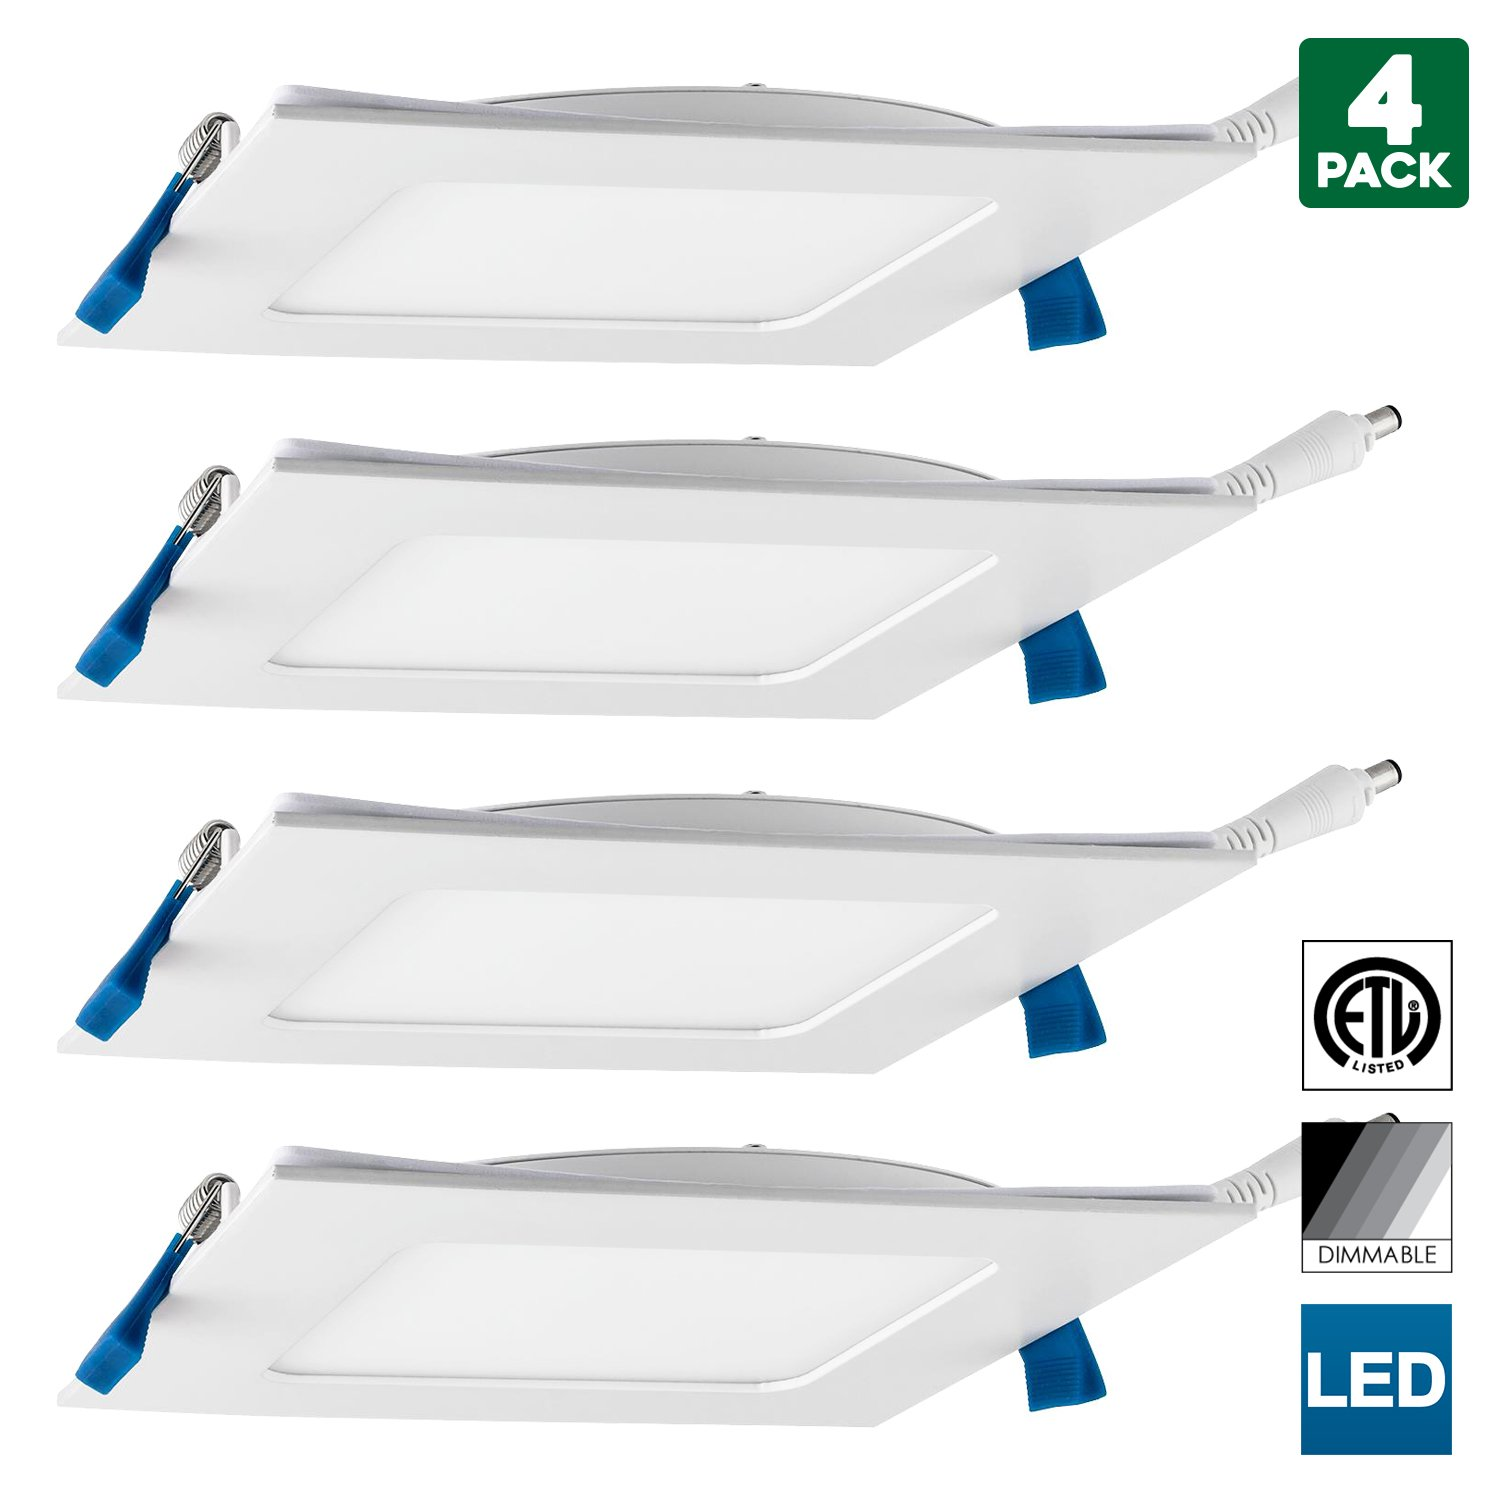 4 Pack Sunlite 6-inch Square 12W Recessed Ultra Slim Dimmable LED Downlight, 850 Lumens (75W Equal), 3000K Warm White, ETL & Energy Star, Kitchens & Living Rooms, Commercial & Residential, White